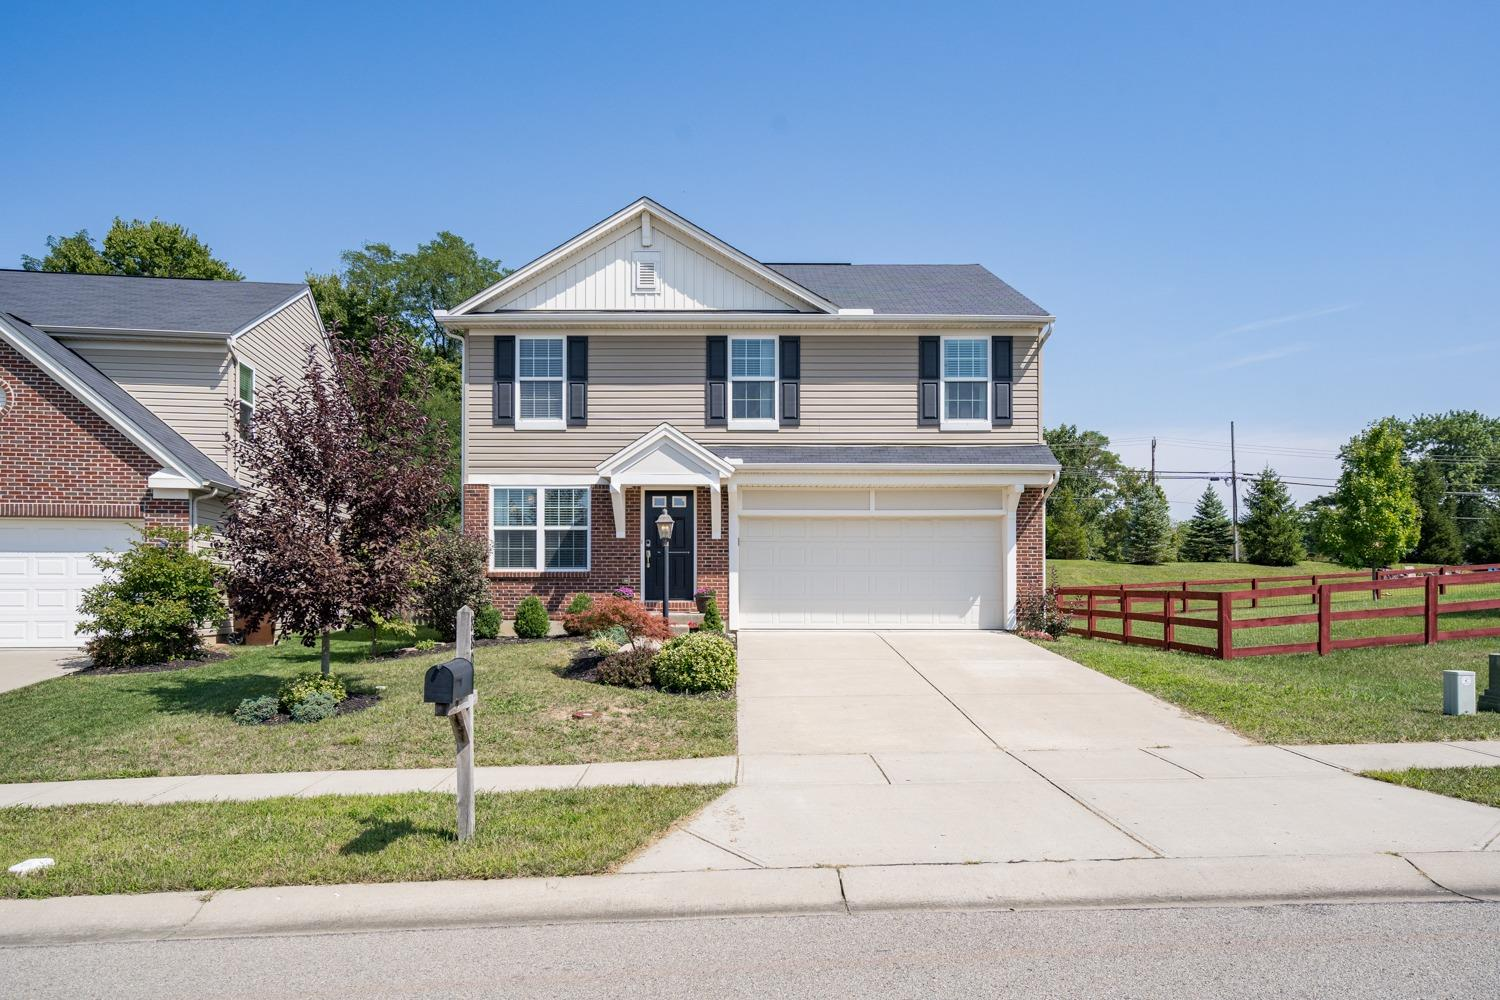 8802 Bluejay View Dr Whitewater Twp OH